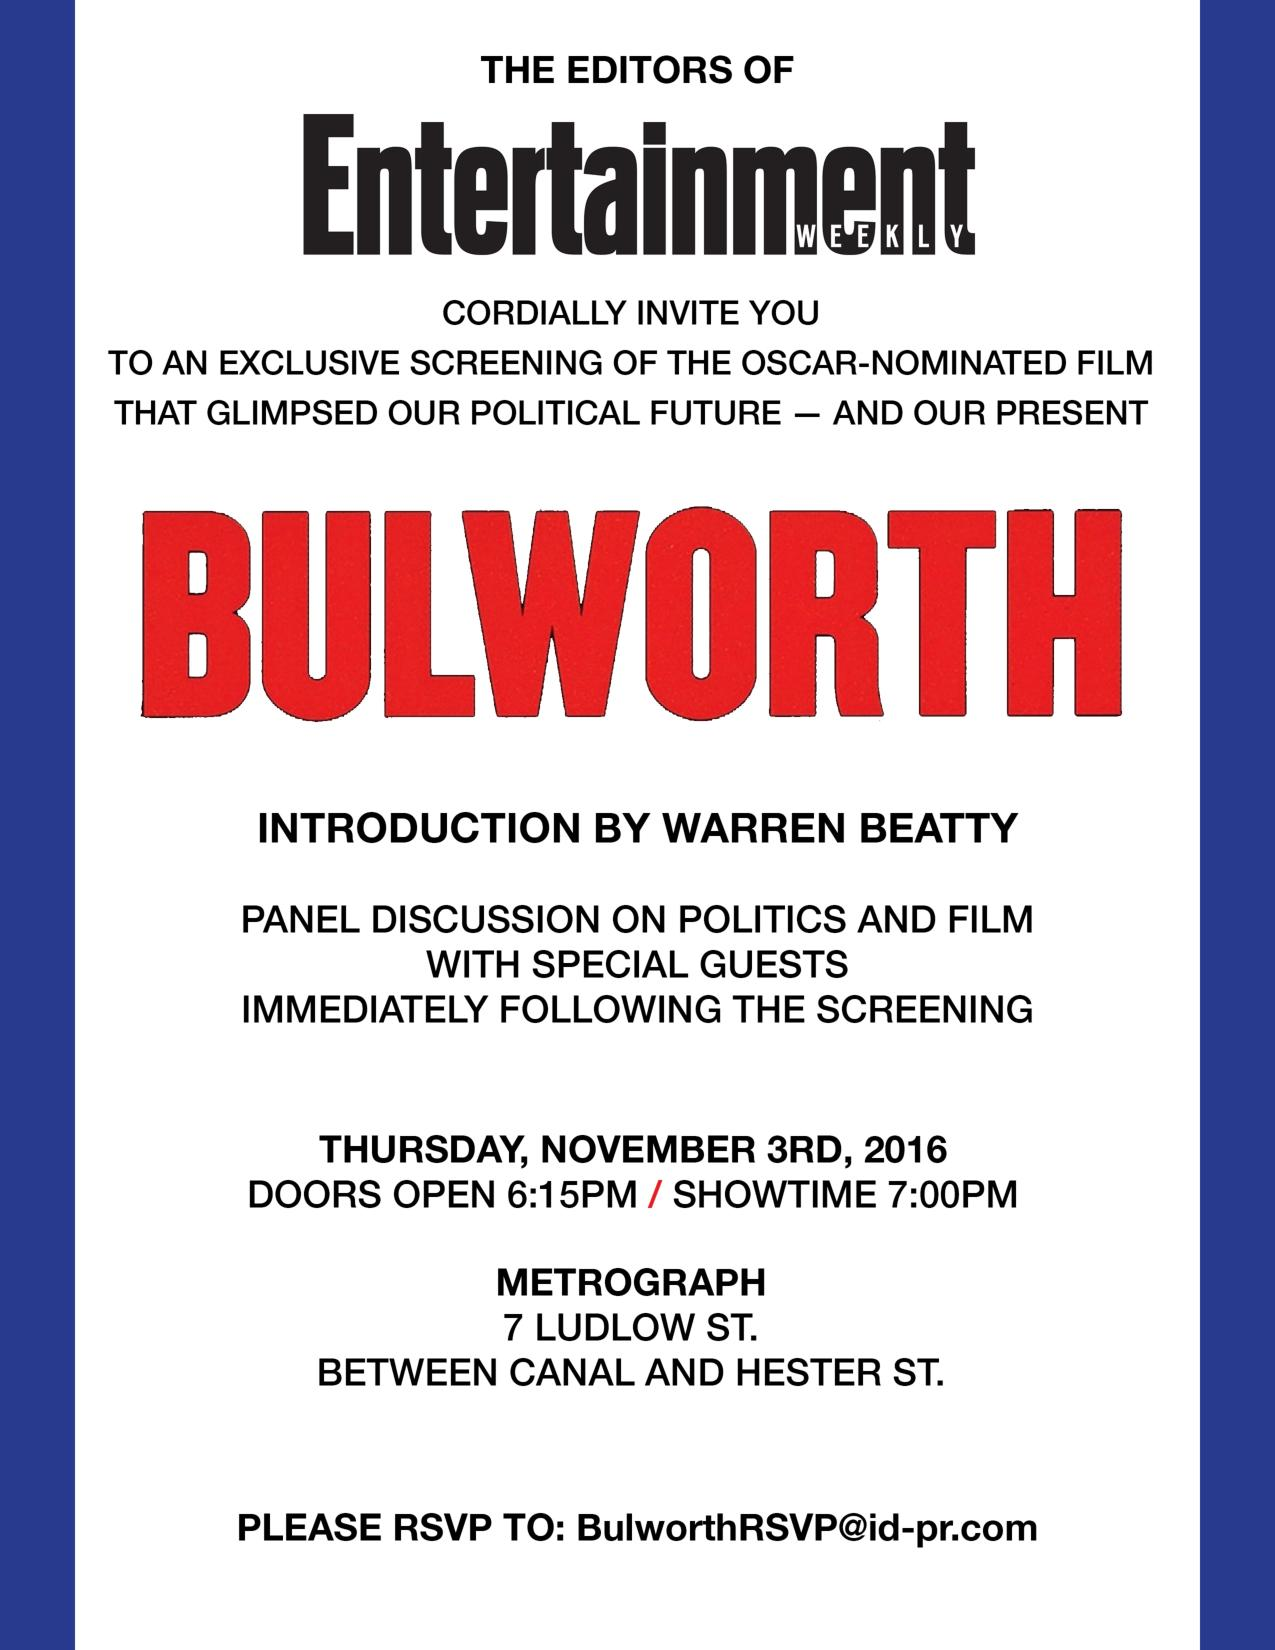 bulworth-invite-page-001